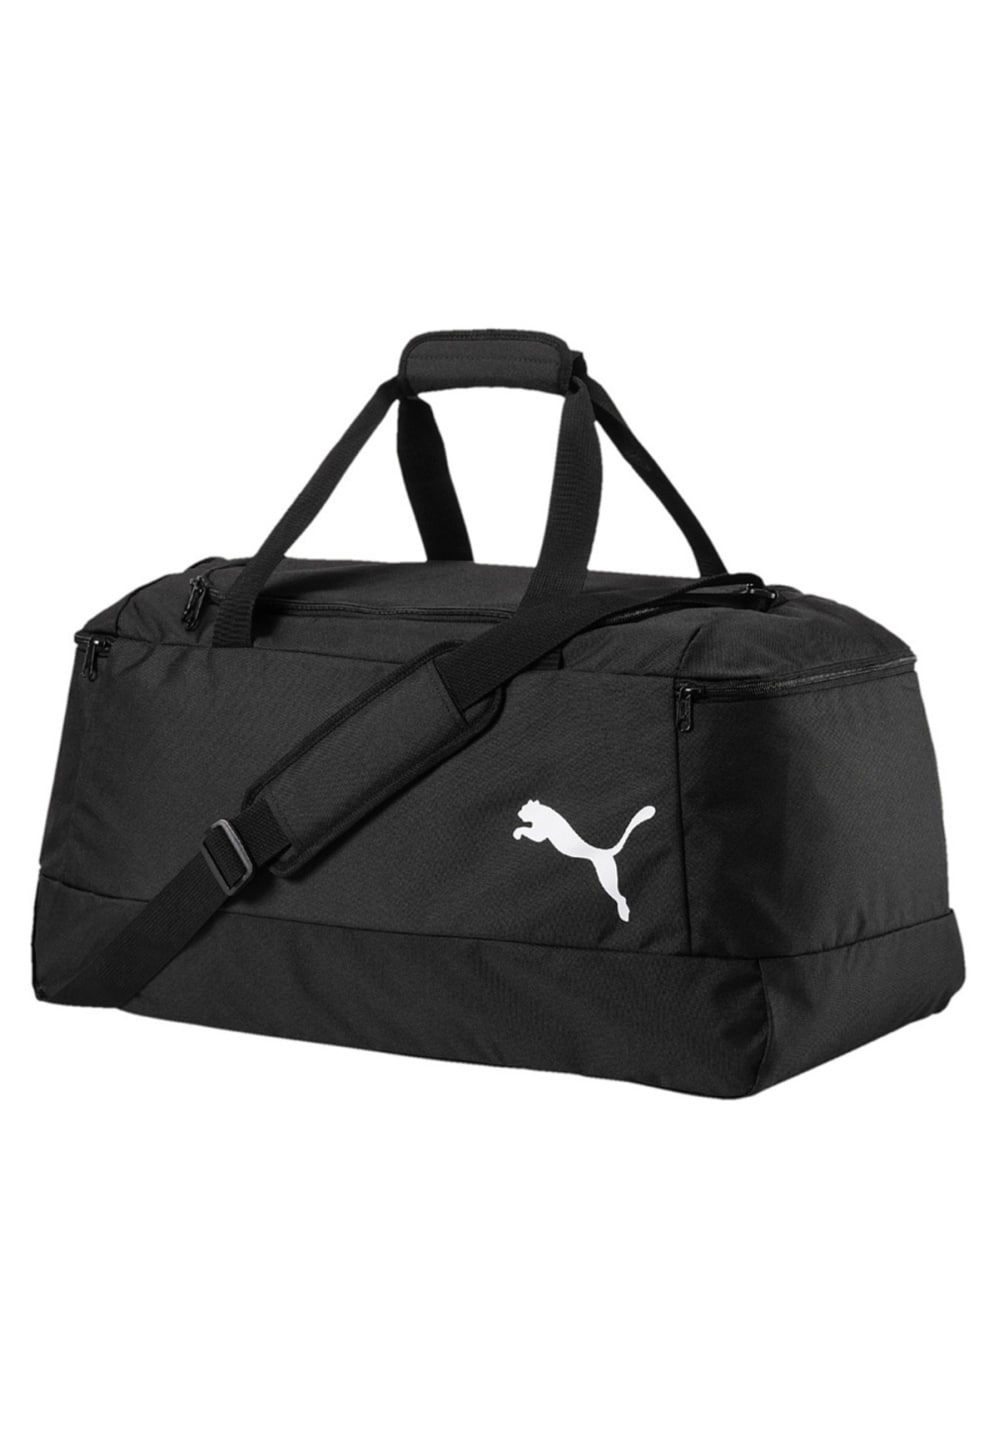 f2de995048b3 ... Puma Pro Training II Medium Bag - Sports bags - Black. Back to  Overview. -50%